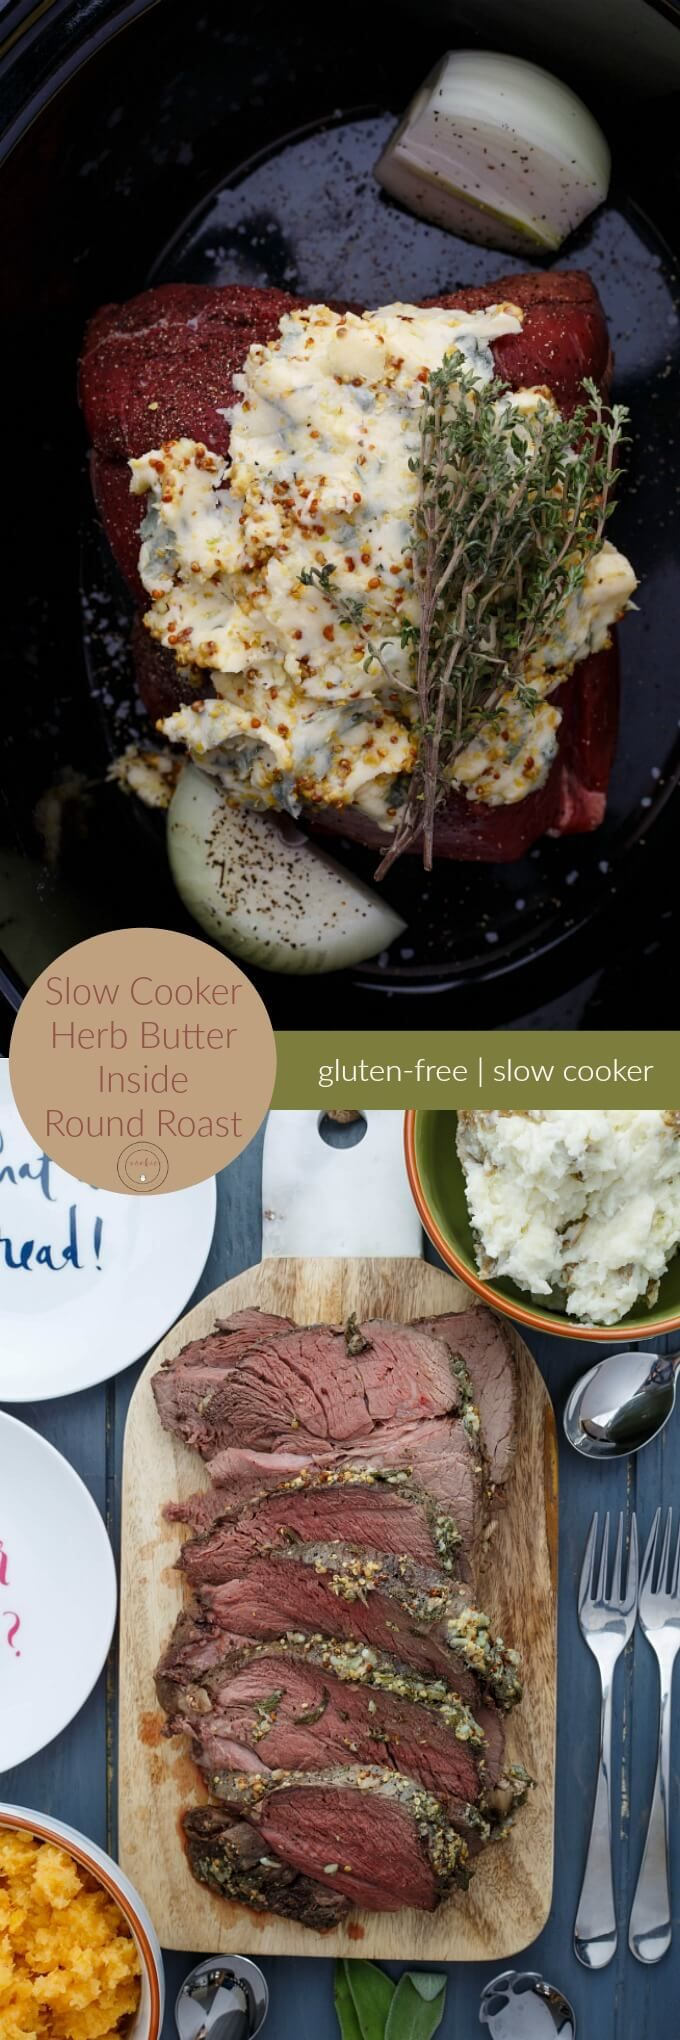 Slow Cooker Herb Butter Inside Round Roast   http://thecookiewriter.com   @thecookiewriter   Easy recipes can be hard to find, but this crock pot friendly meat recipe teaches you how to cook without much effort!